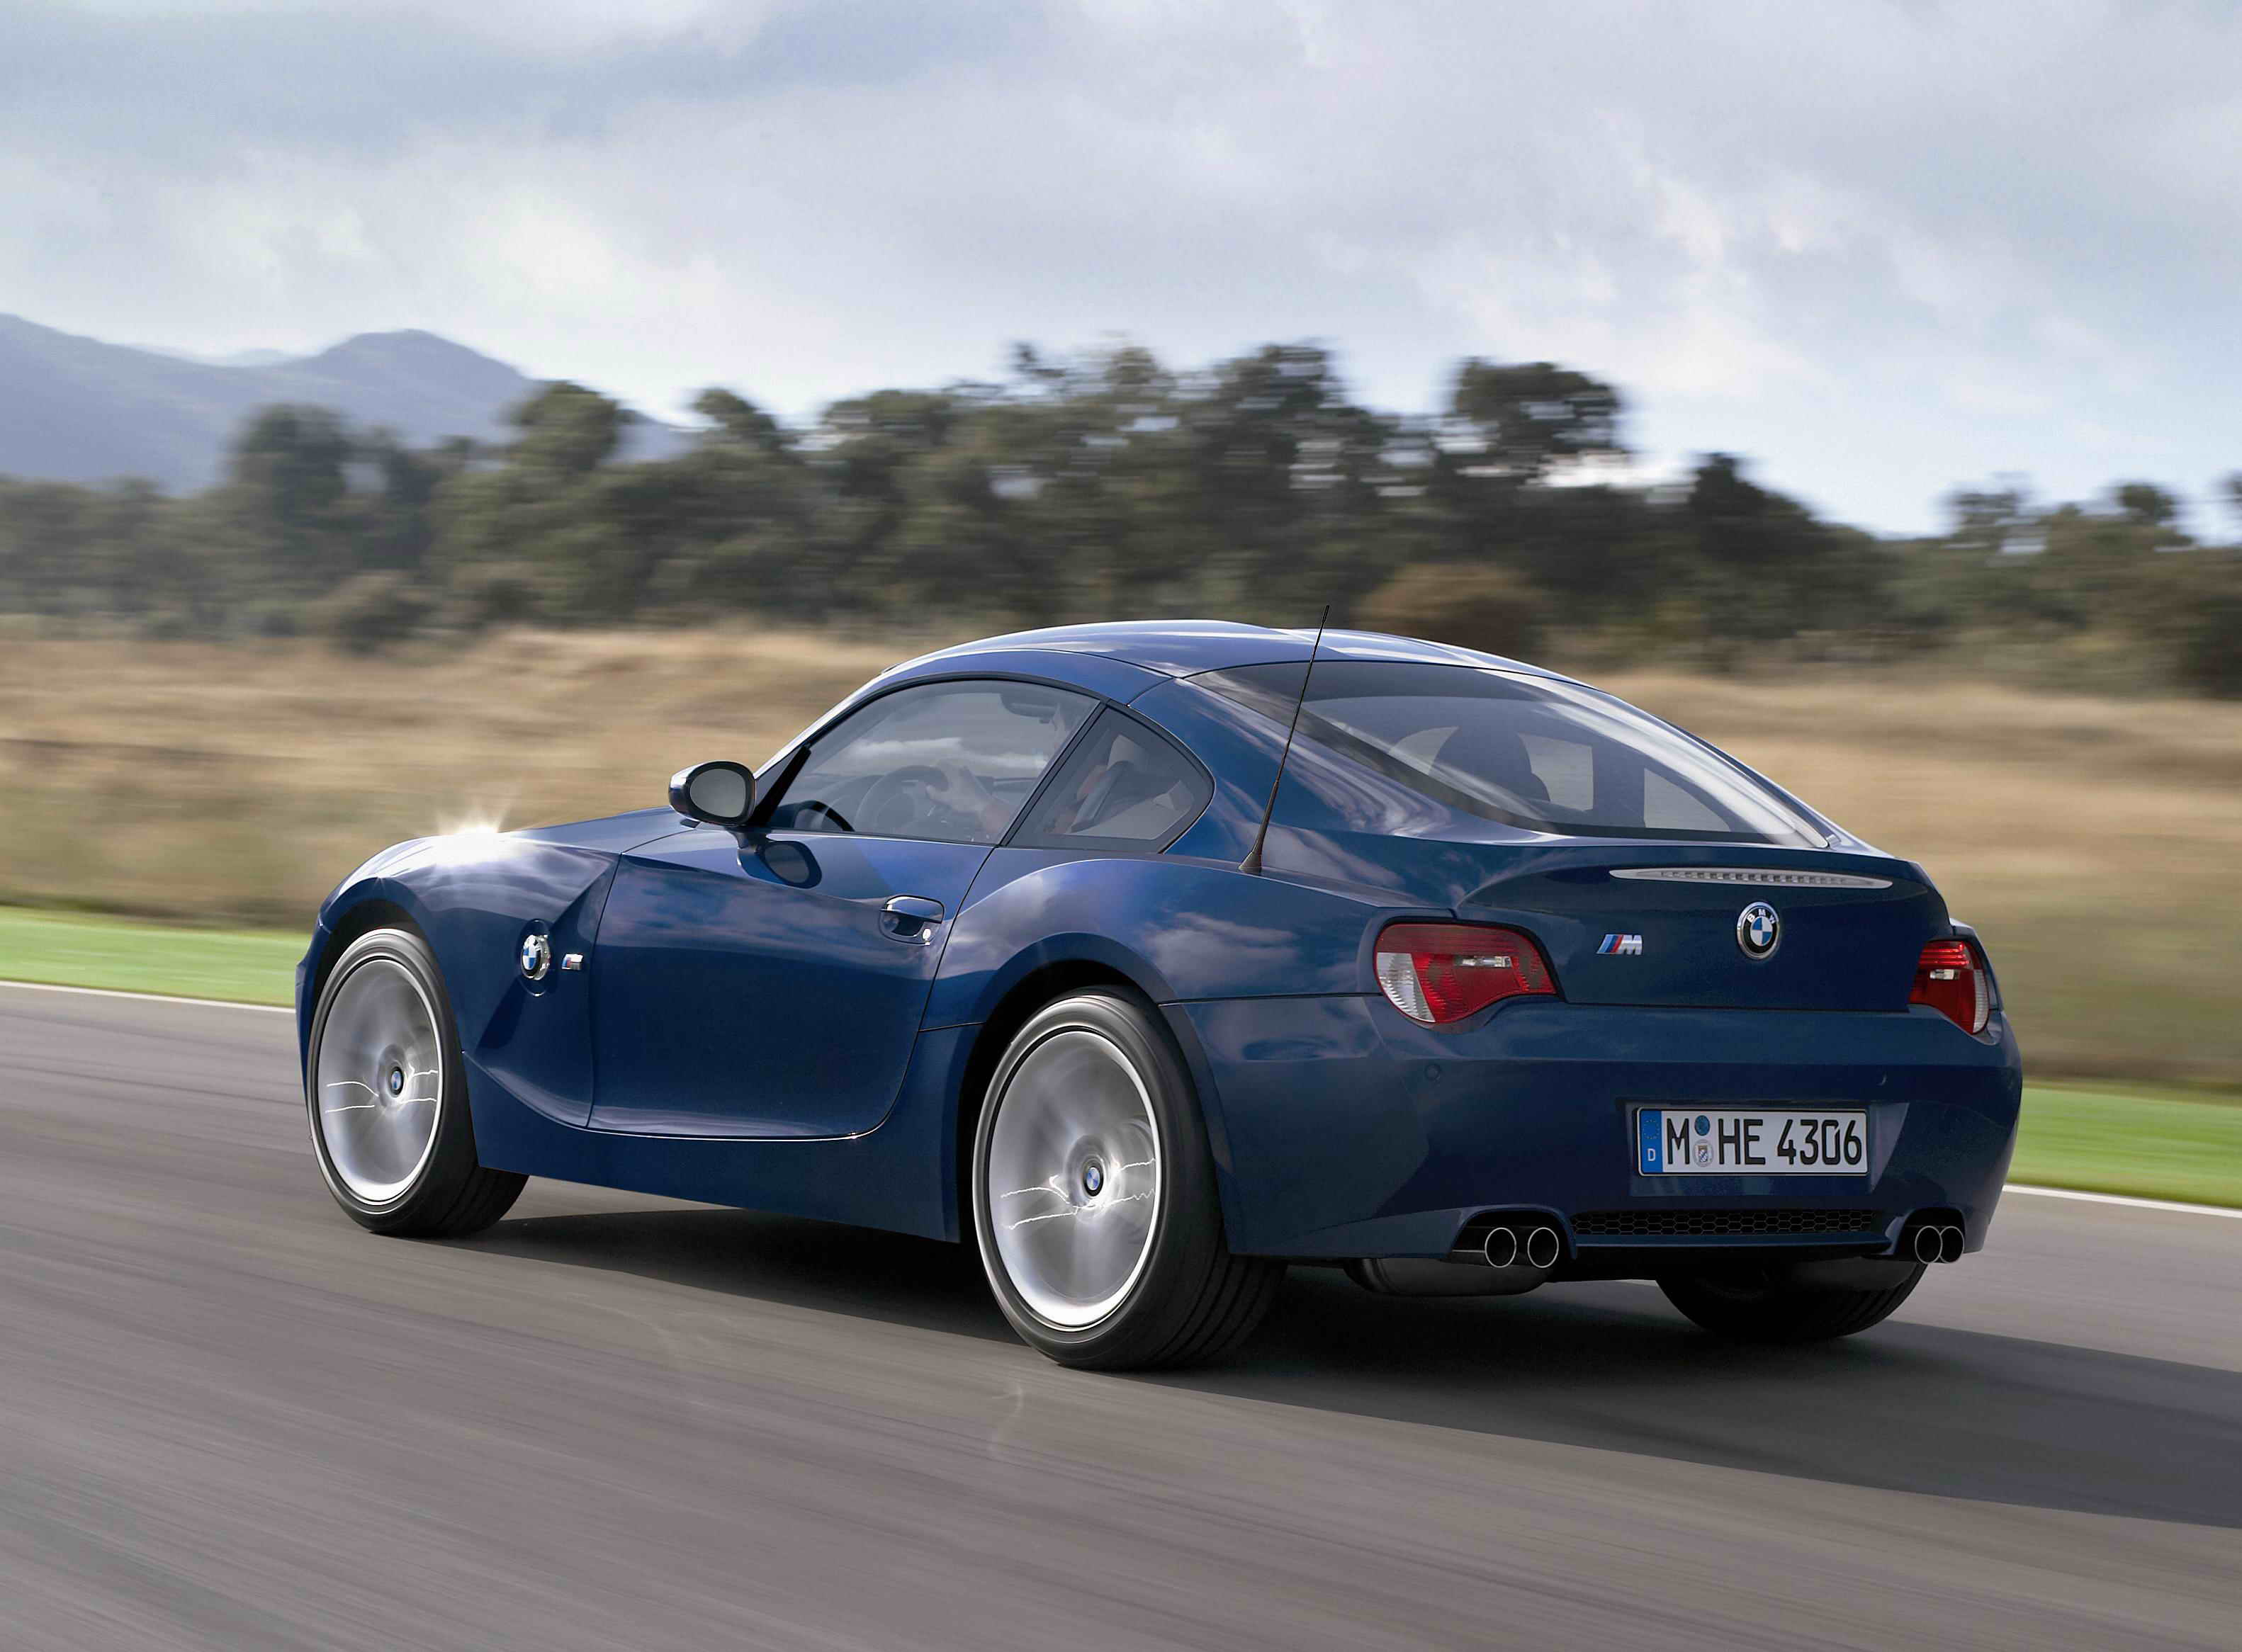 2007 bmw z4 m coupe gallery 64643 top speed. Black Bedroom Furniture Sets. Home Design Ideas